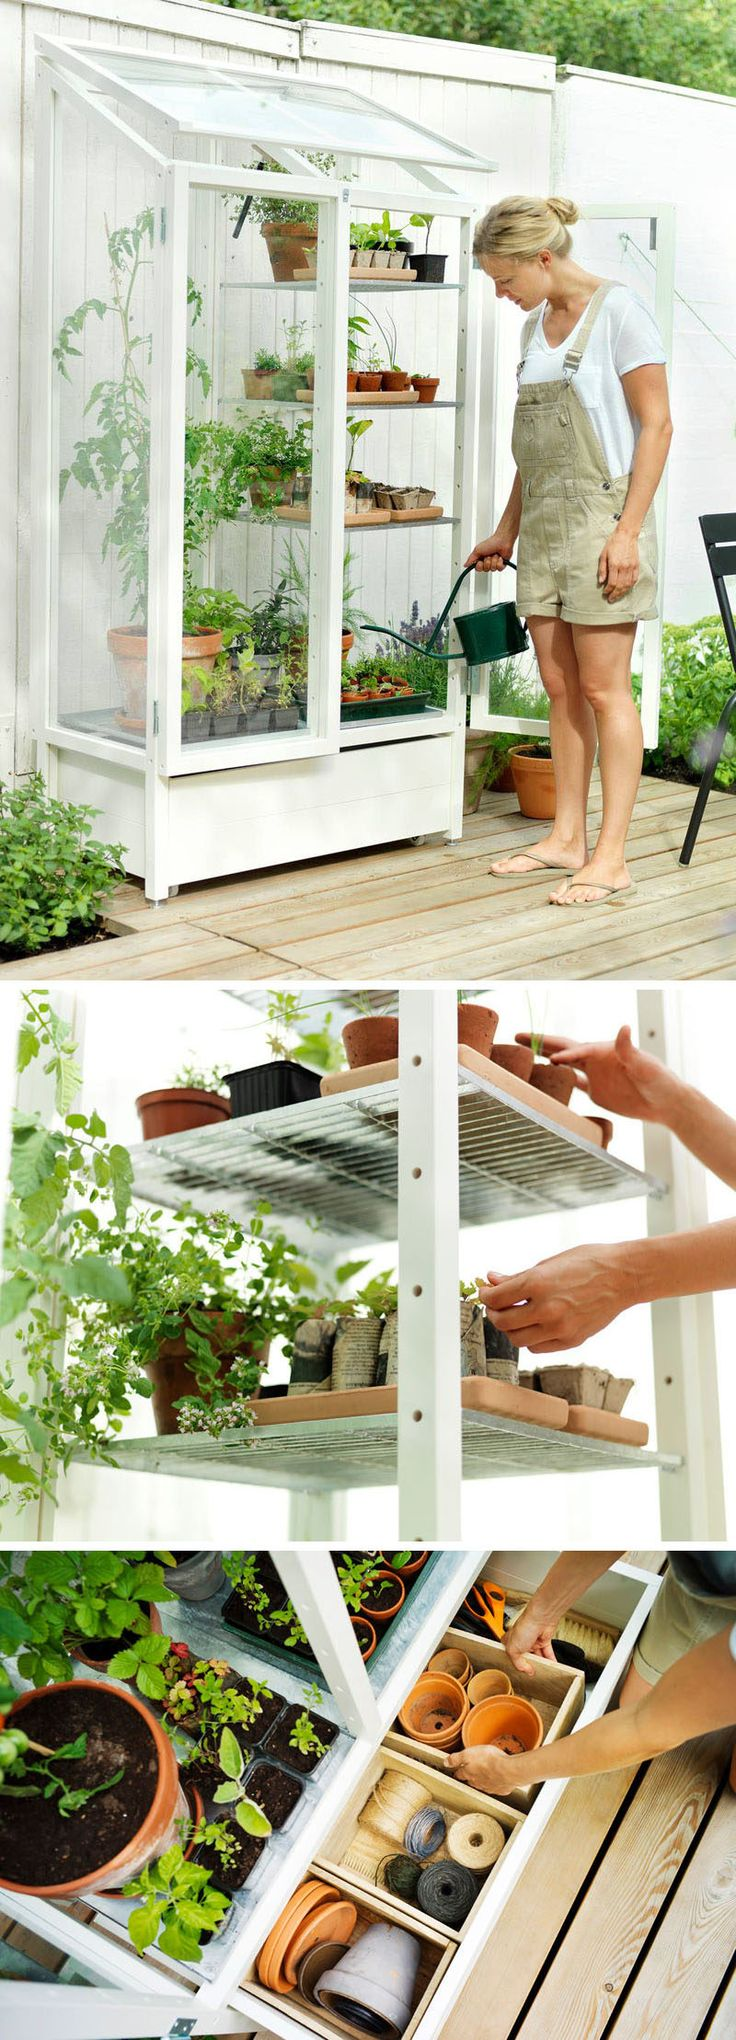 These Customizable Garden Shelves Enable To Become A Master Gardener, Or At  The Very Least